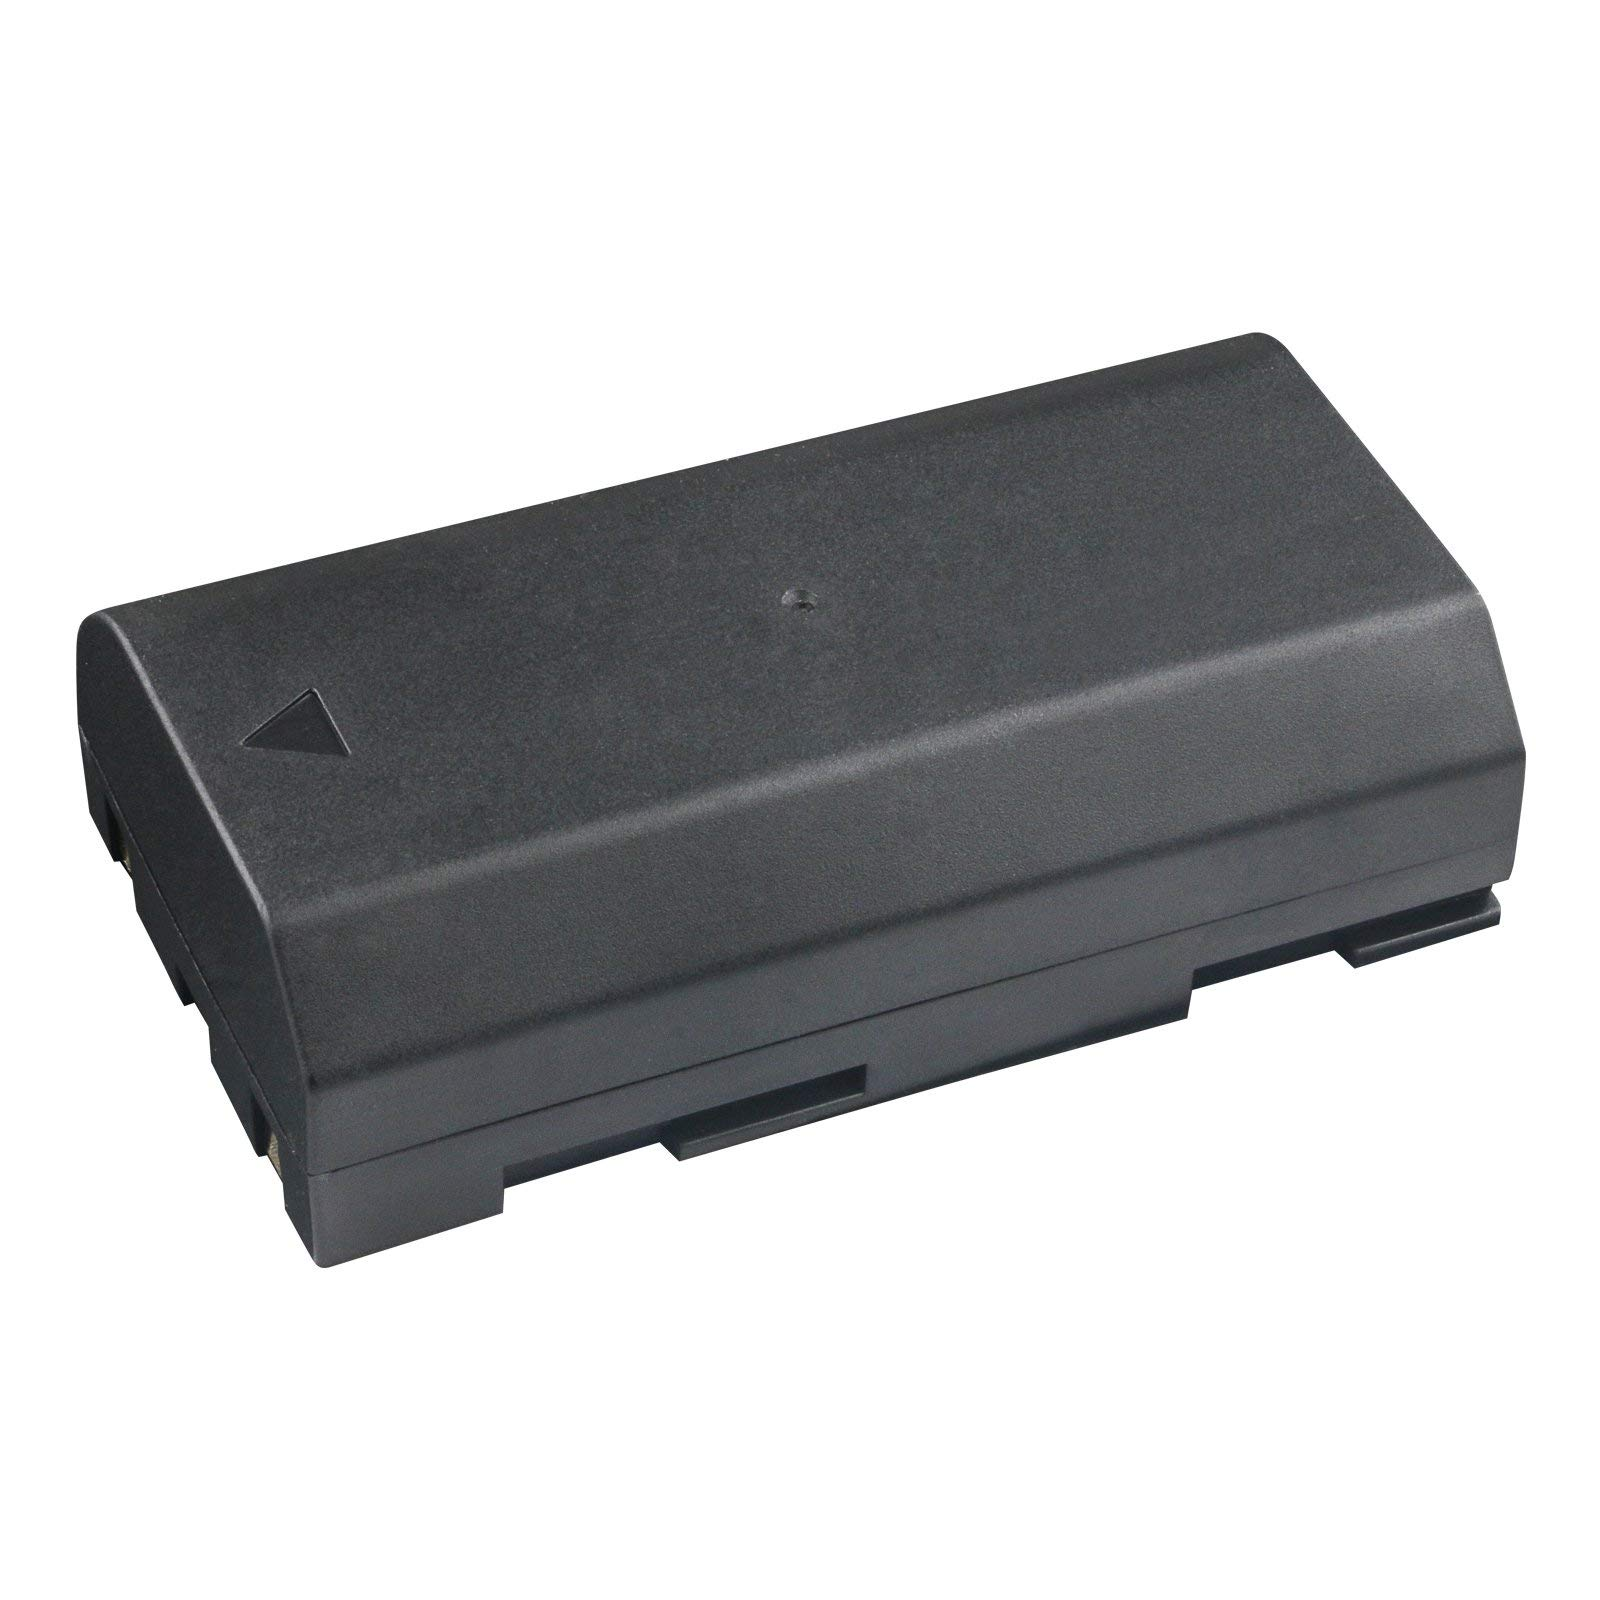 Kastar D-Li1 Battery 2 Pack Replacement for Pentax Ei-D-Li1 EI-D-BC1 EI-2000 Trimble 29518 46607 52030 54344 38403 5700 5800 R6 R7 R8 GNSS TR-R8 GPS MT1000 HP C8873A PhotoSmart 912 C912 912XI C912XI by Kastar (Image #3)